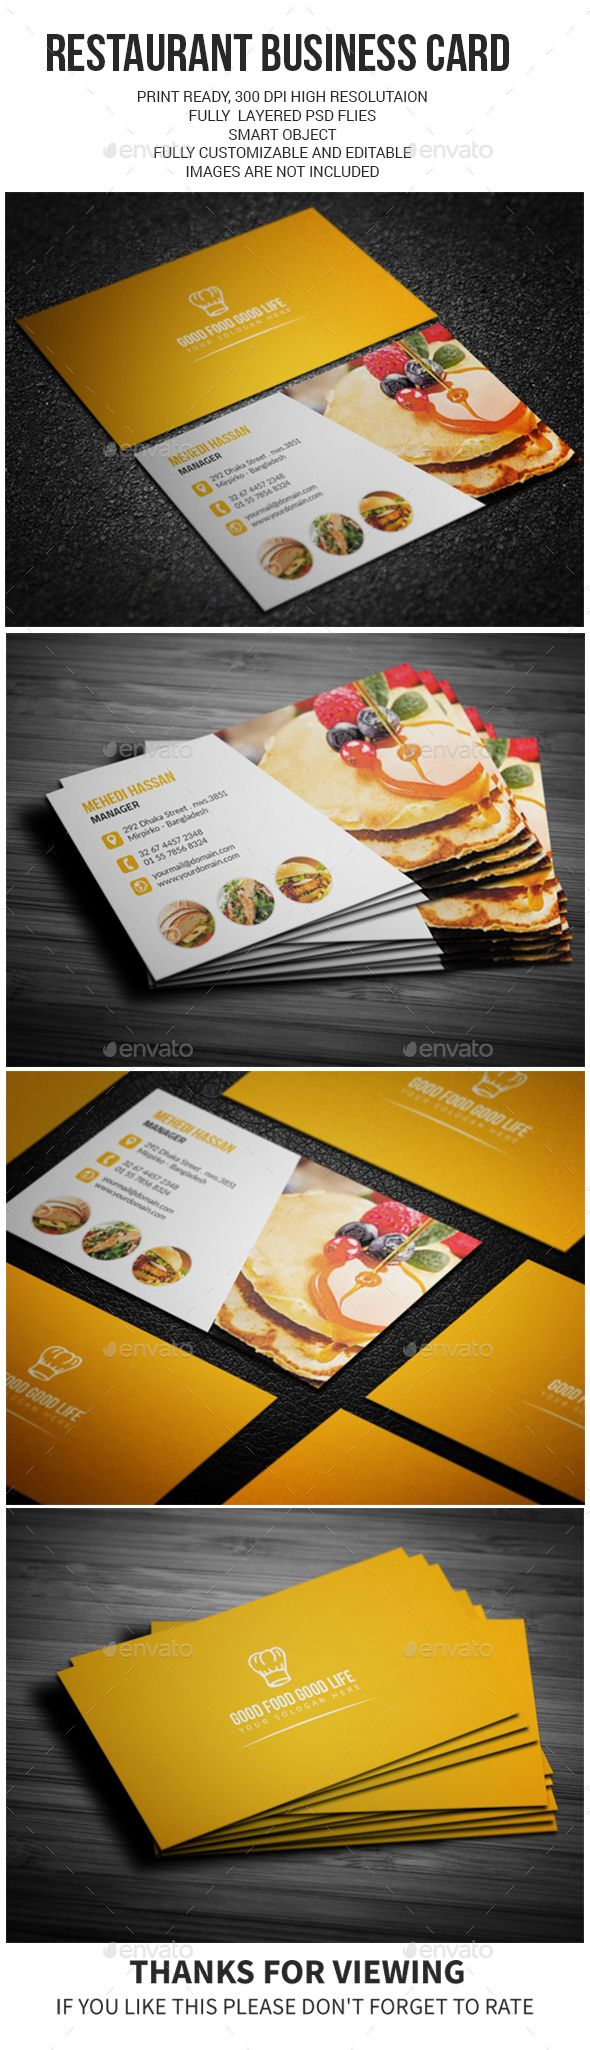 194 best business cards templates images on pinterest corporate restaurant business card template psd design visitcard download httpgraphicriver wajeb Choice Image